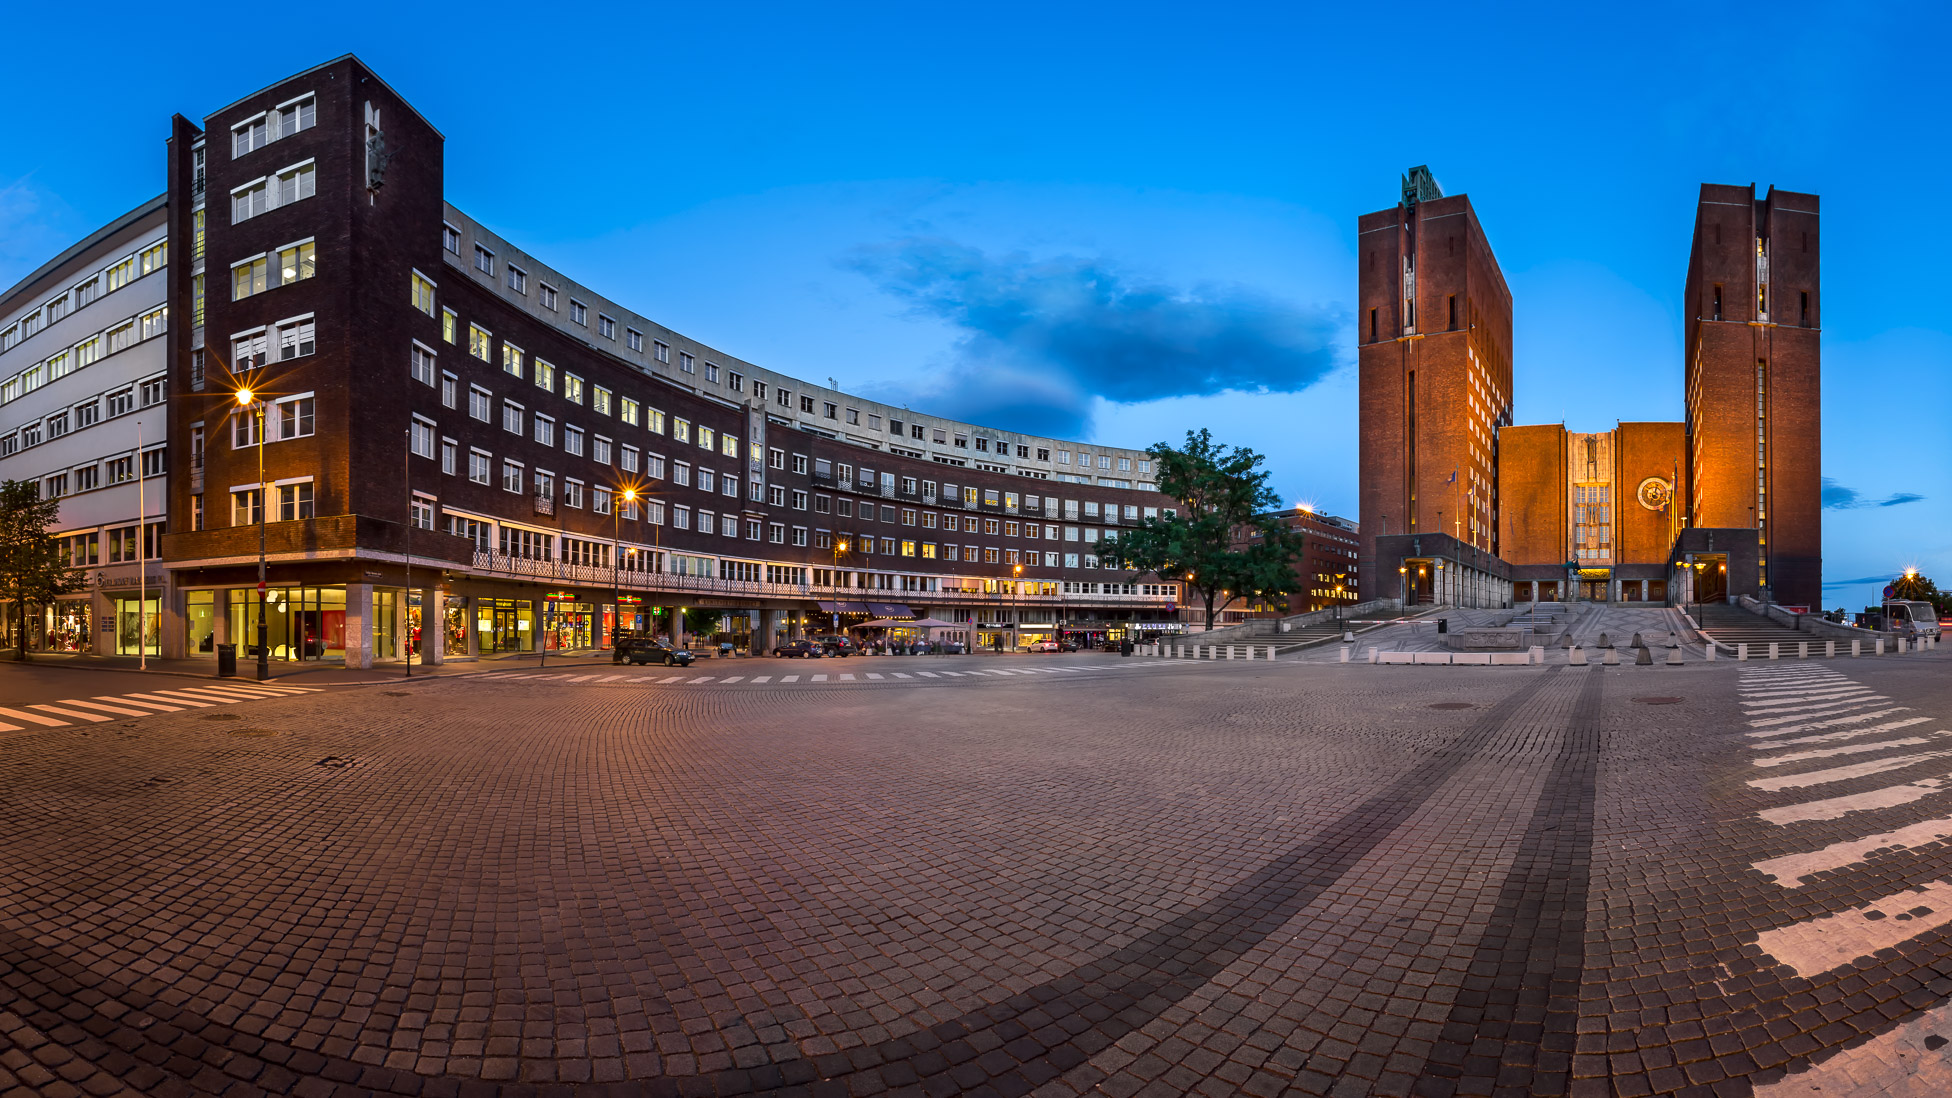 Panorama of Oslo City Hall and Fridtjof Nansens Plass in the Evening, Oslo, Norway